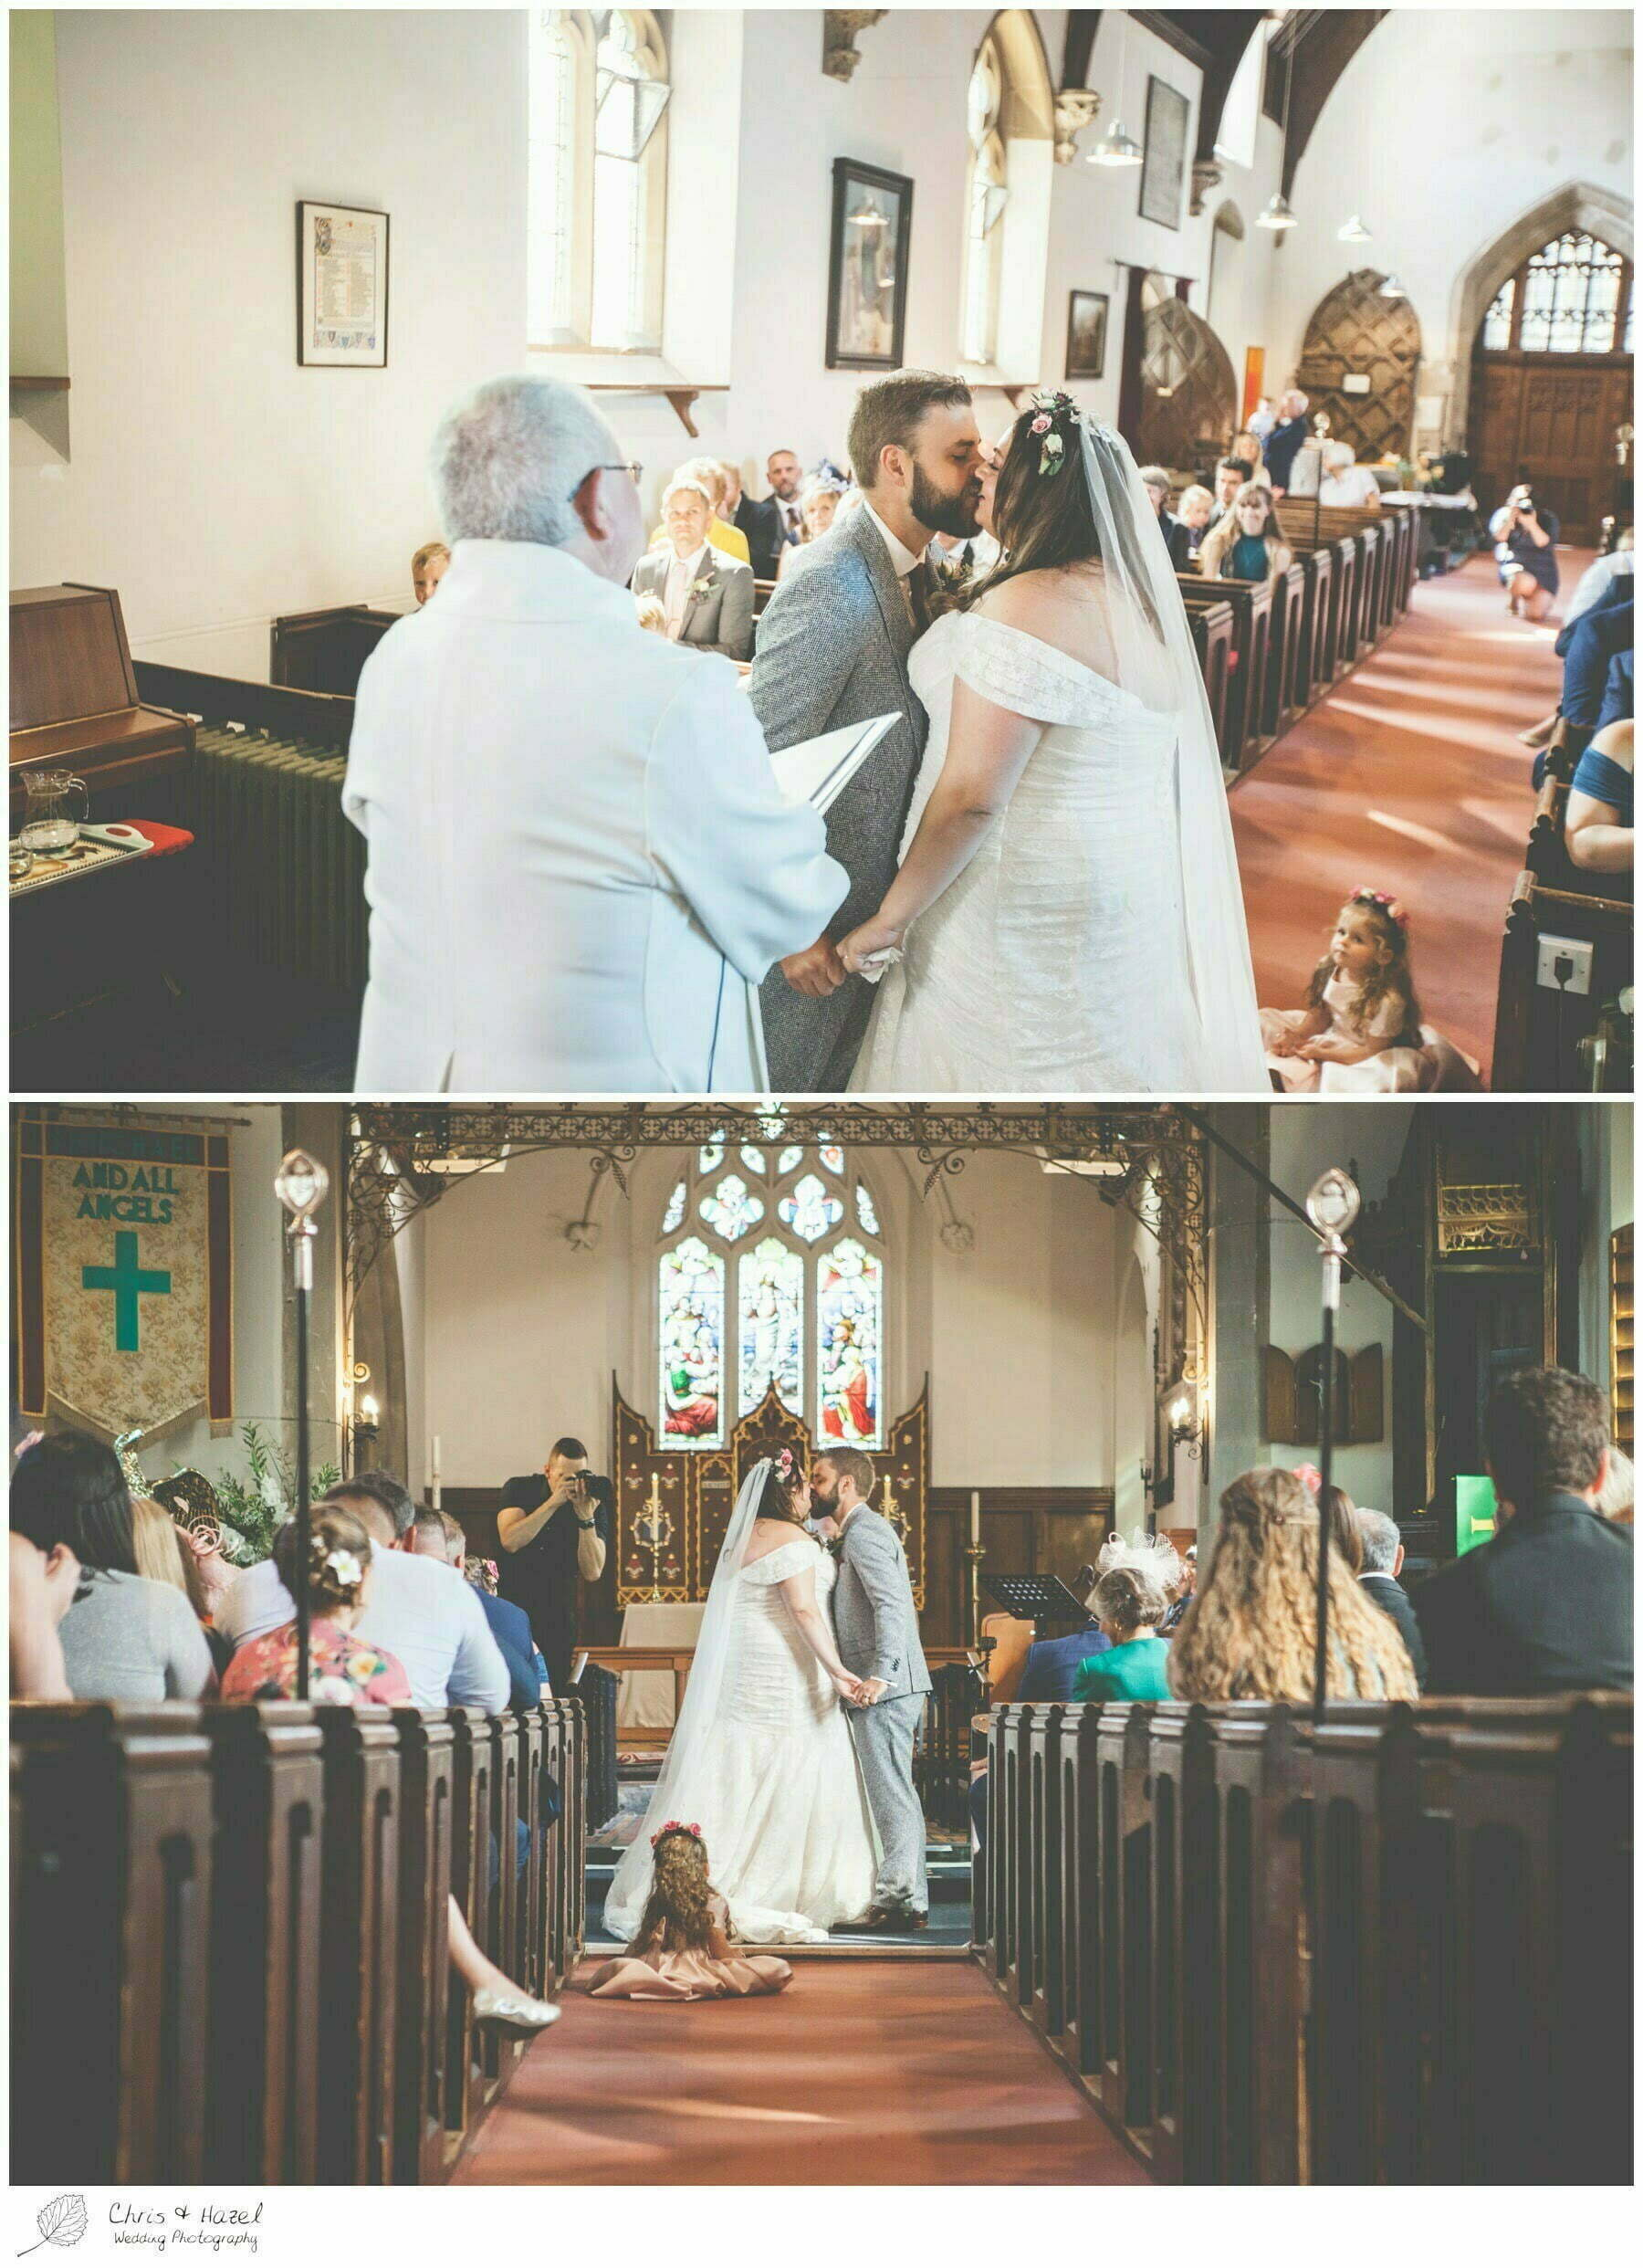 First Kiss, Bride and groom at altar, Hilperton Church, St Michael & All Angels' Church, Wedding Photography, Wiltshire Wedding Photographer Trowbridge, Chris and Hazel Wedding Photography